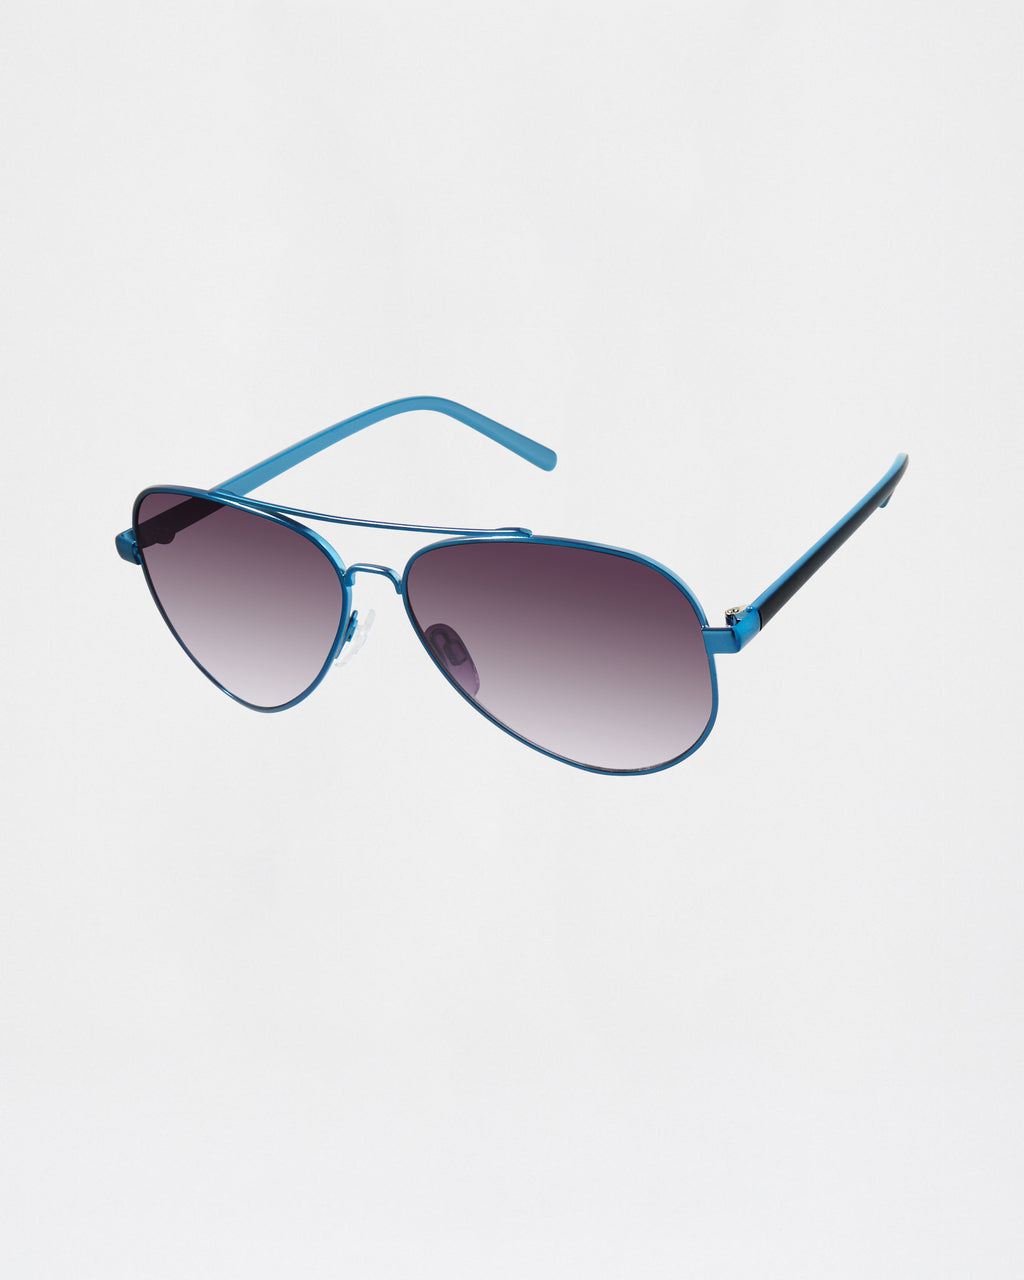 NMNYCT2 - catalina sunglasses - accessories - sunglasses - AQUA AND BLACK AVIATOR FRAME 100% UVA/UVB